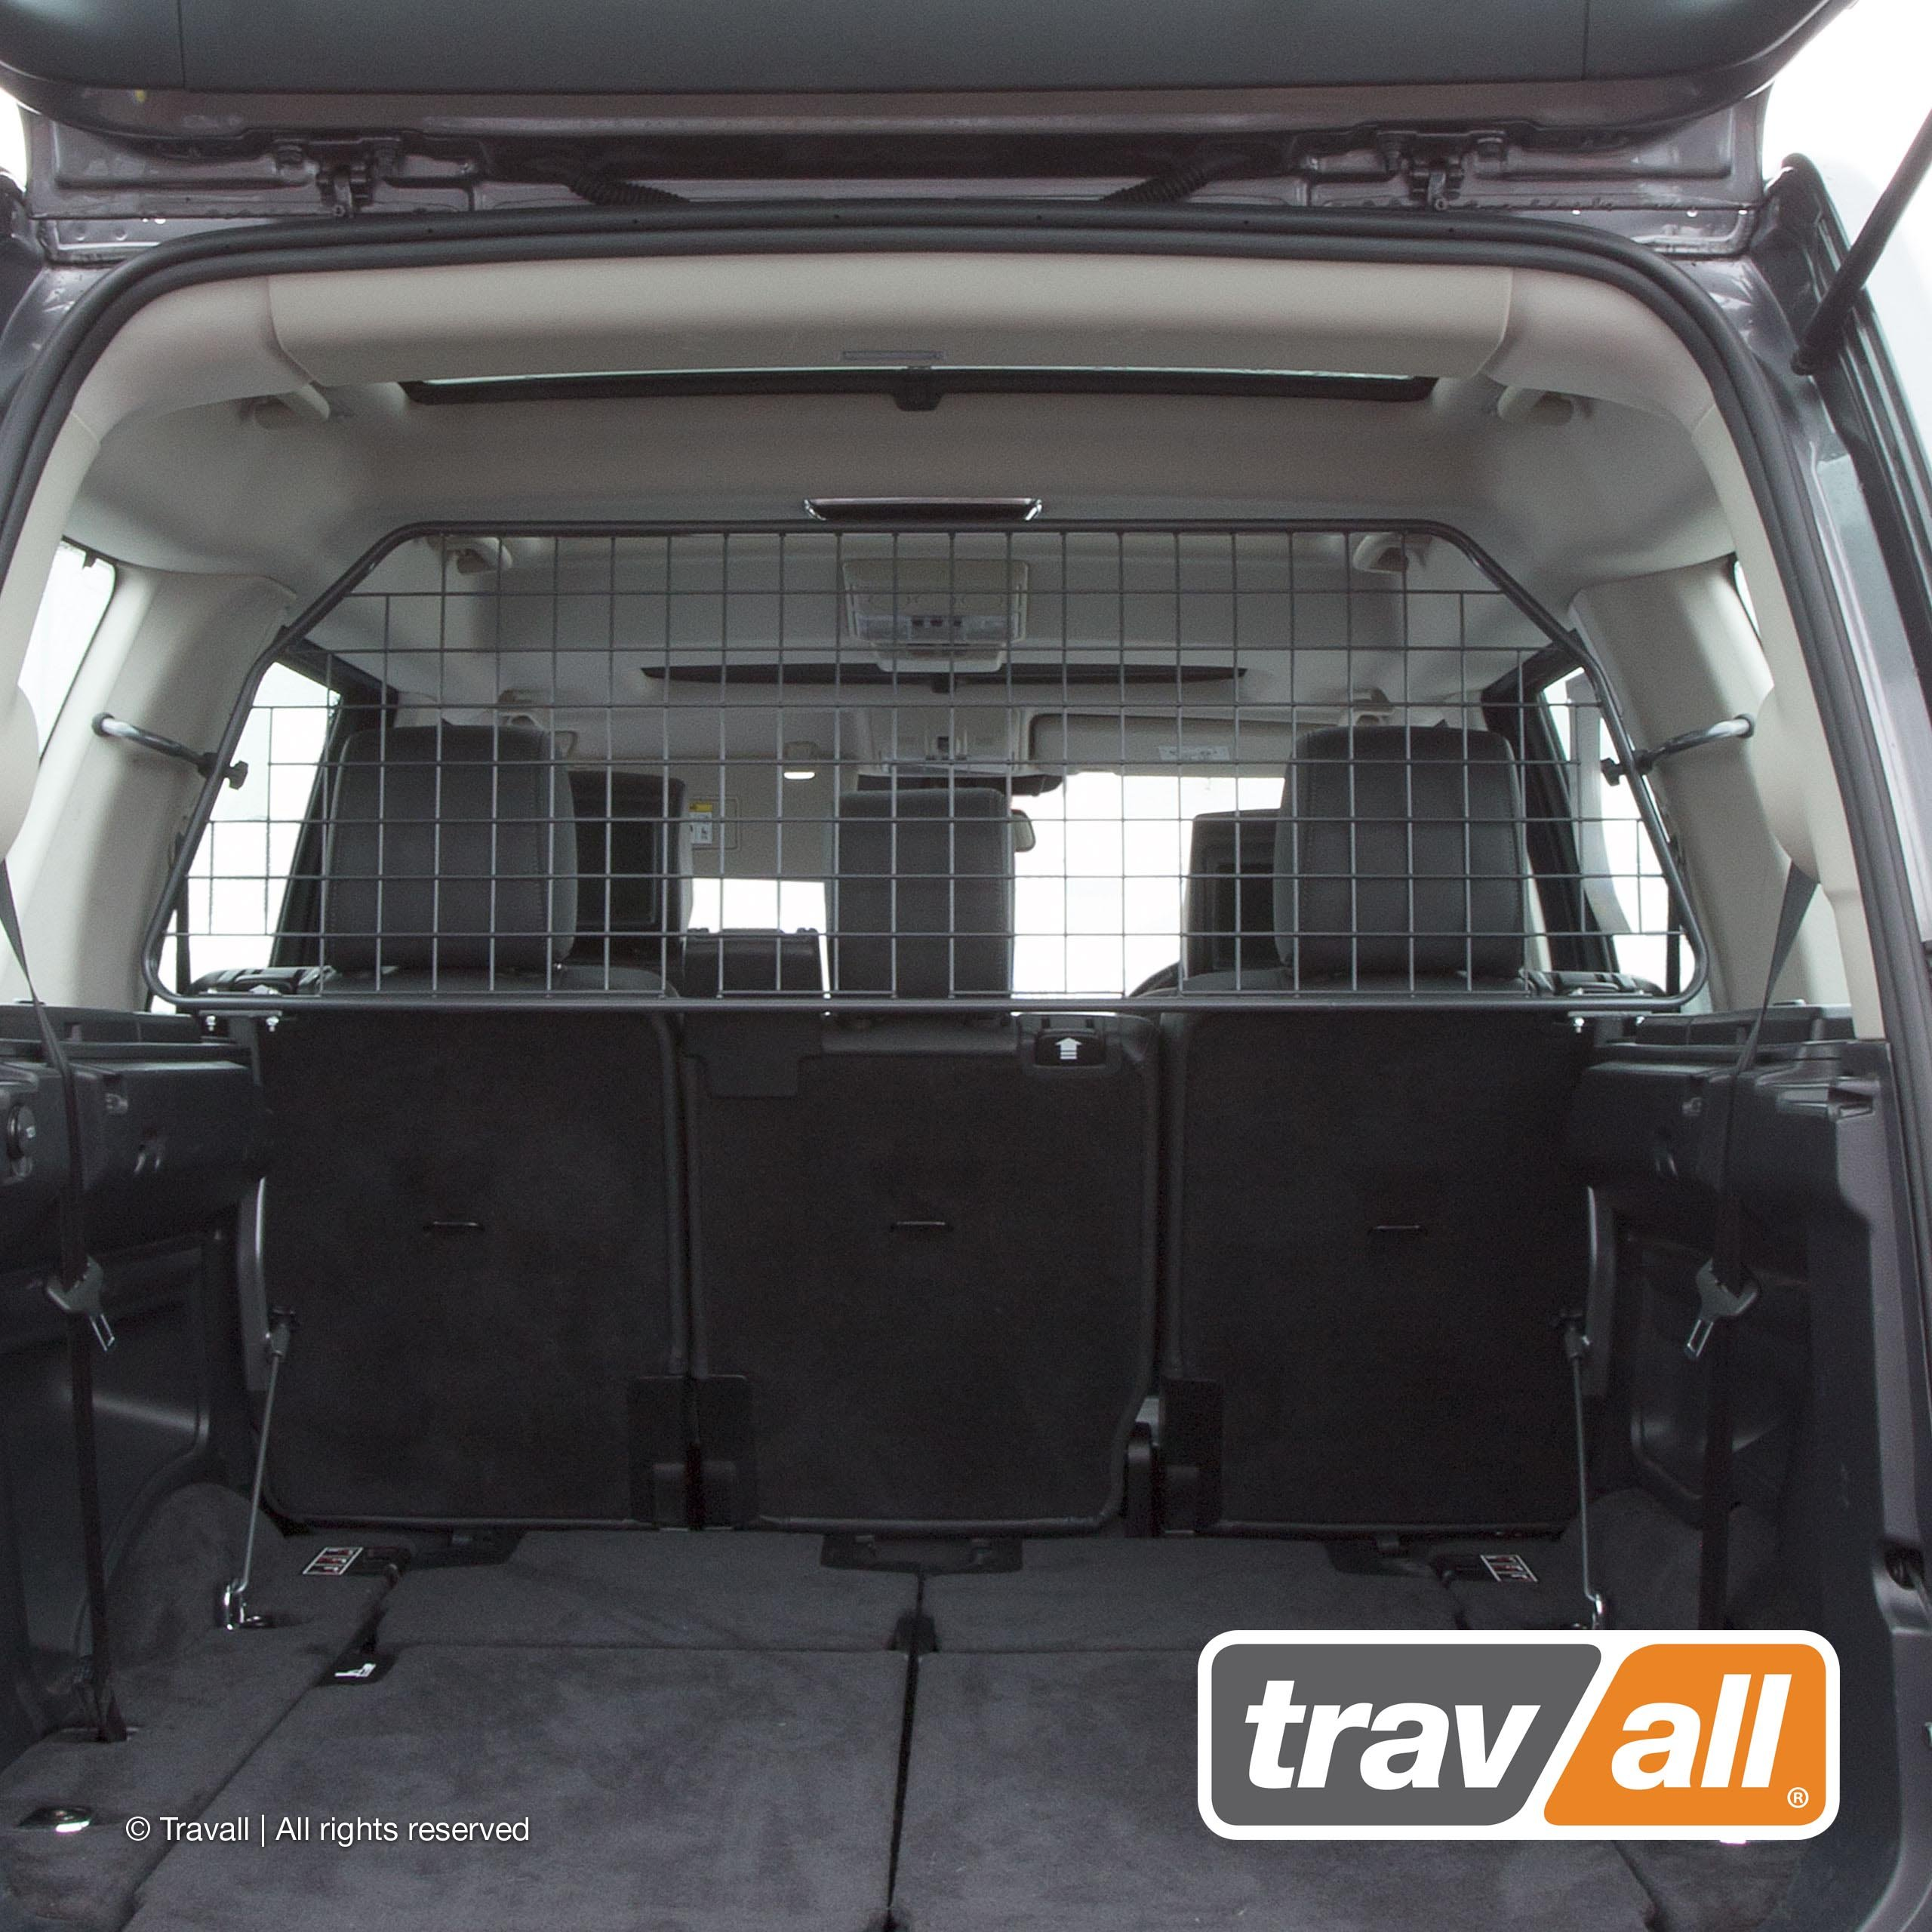 Travall Guard Compatible with Land Rover LR3 Discovery 3 (2004-2009) LR4 Discovery 4 (2009-2016) TDG1509 - Rattle-Free Steel Pet Barrier by Travall